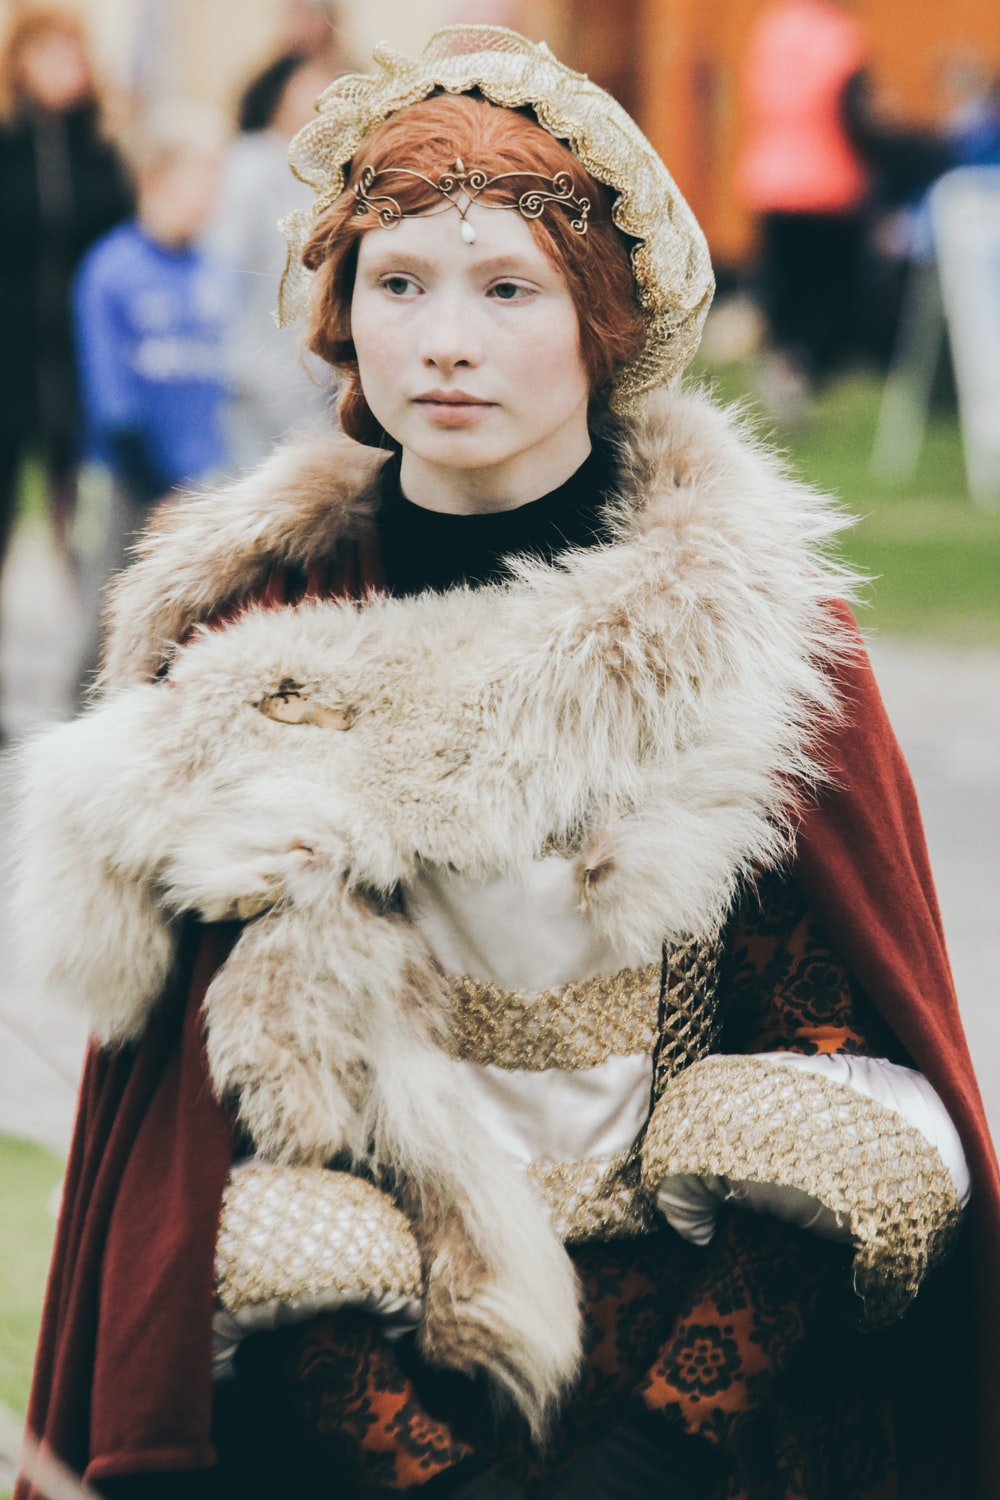 woman wearing red and white fur coat